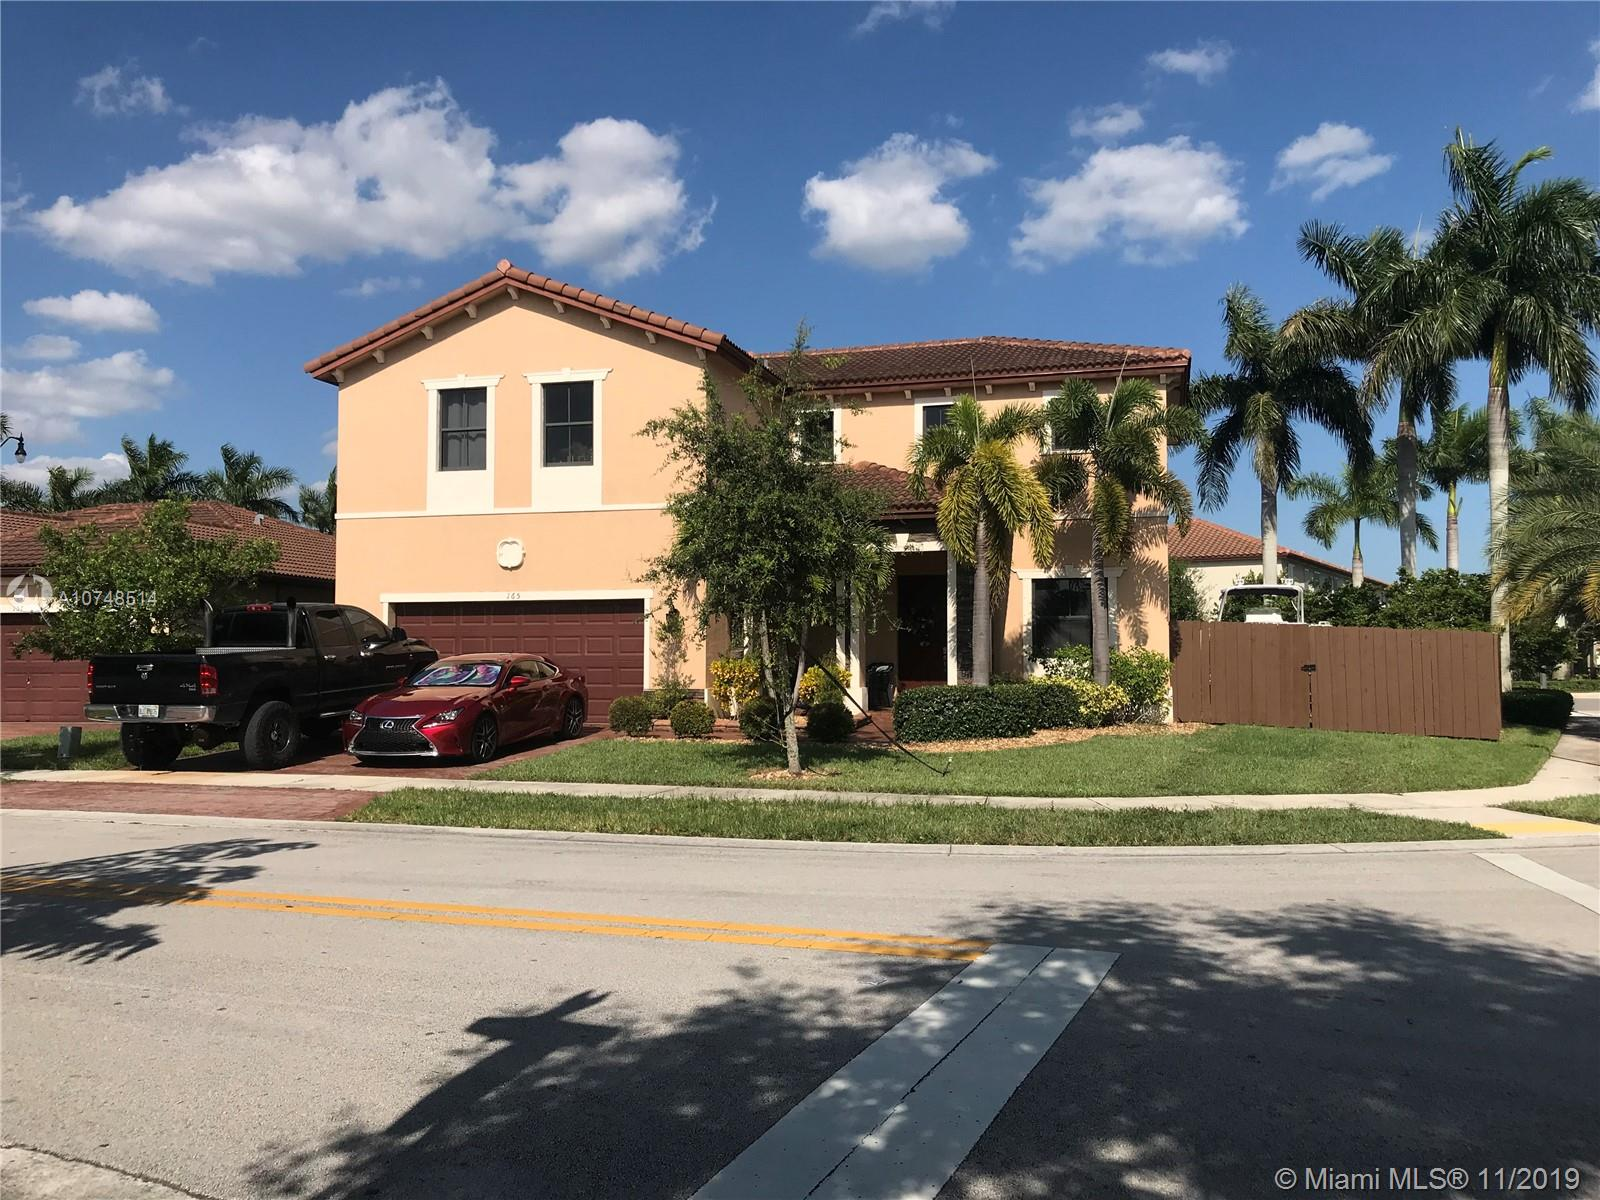 165 SE 36th Pl, Homestead, FL 33033 - Homestead, FL real estate listing